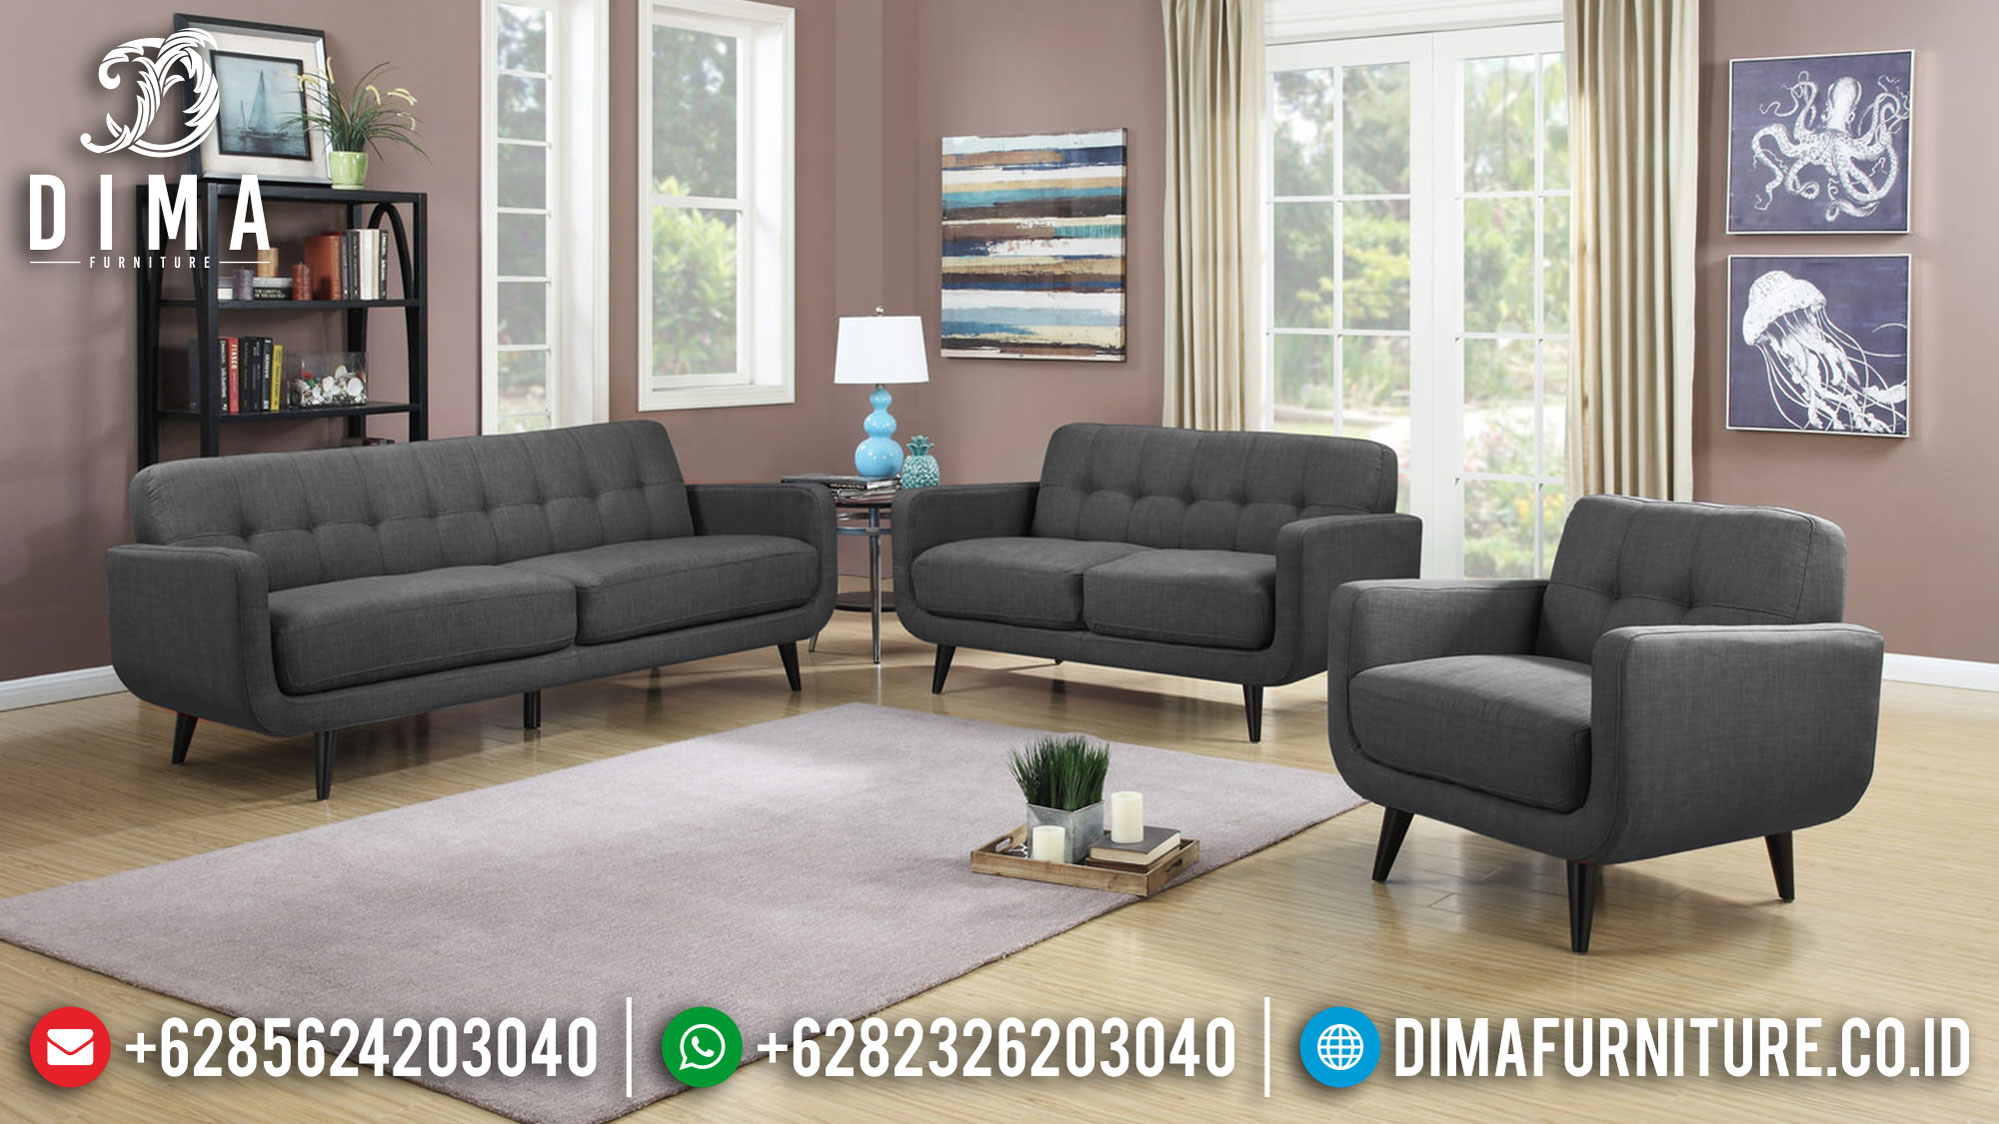 New Sale Sofa Tamu Minimalis Jepara Natural Jati Simple Design Inspiring SK-374